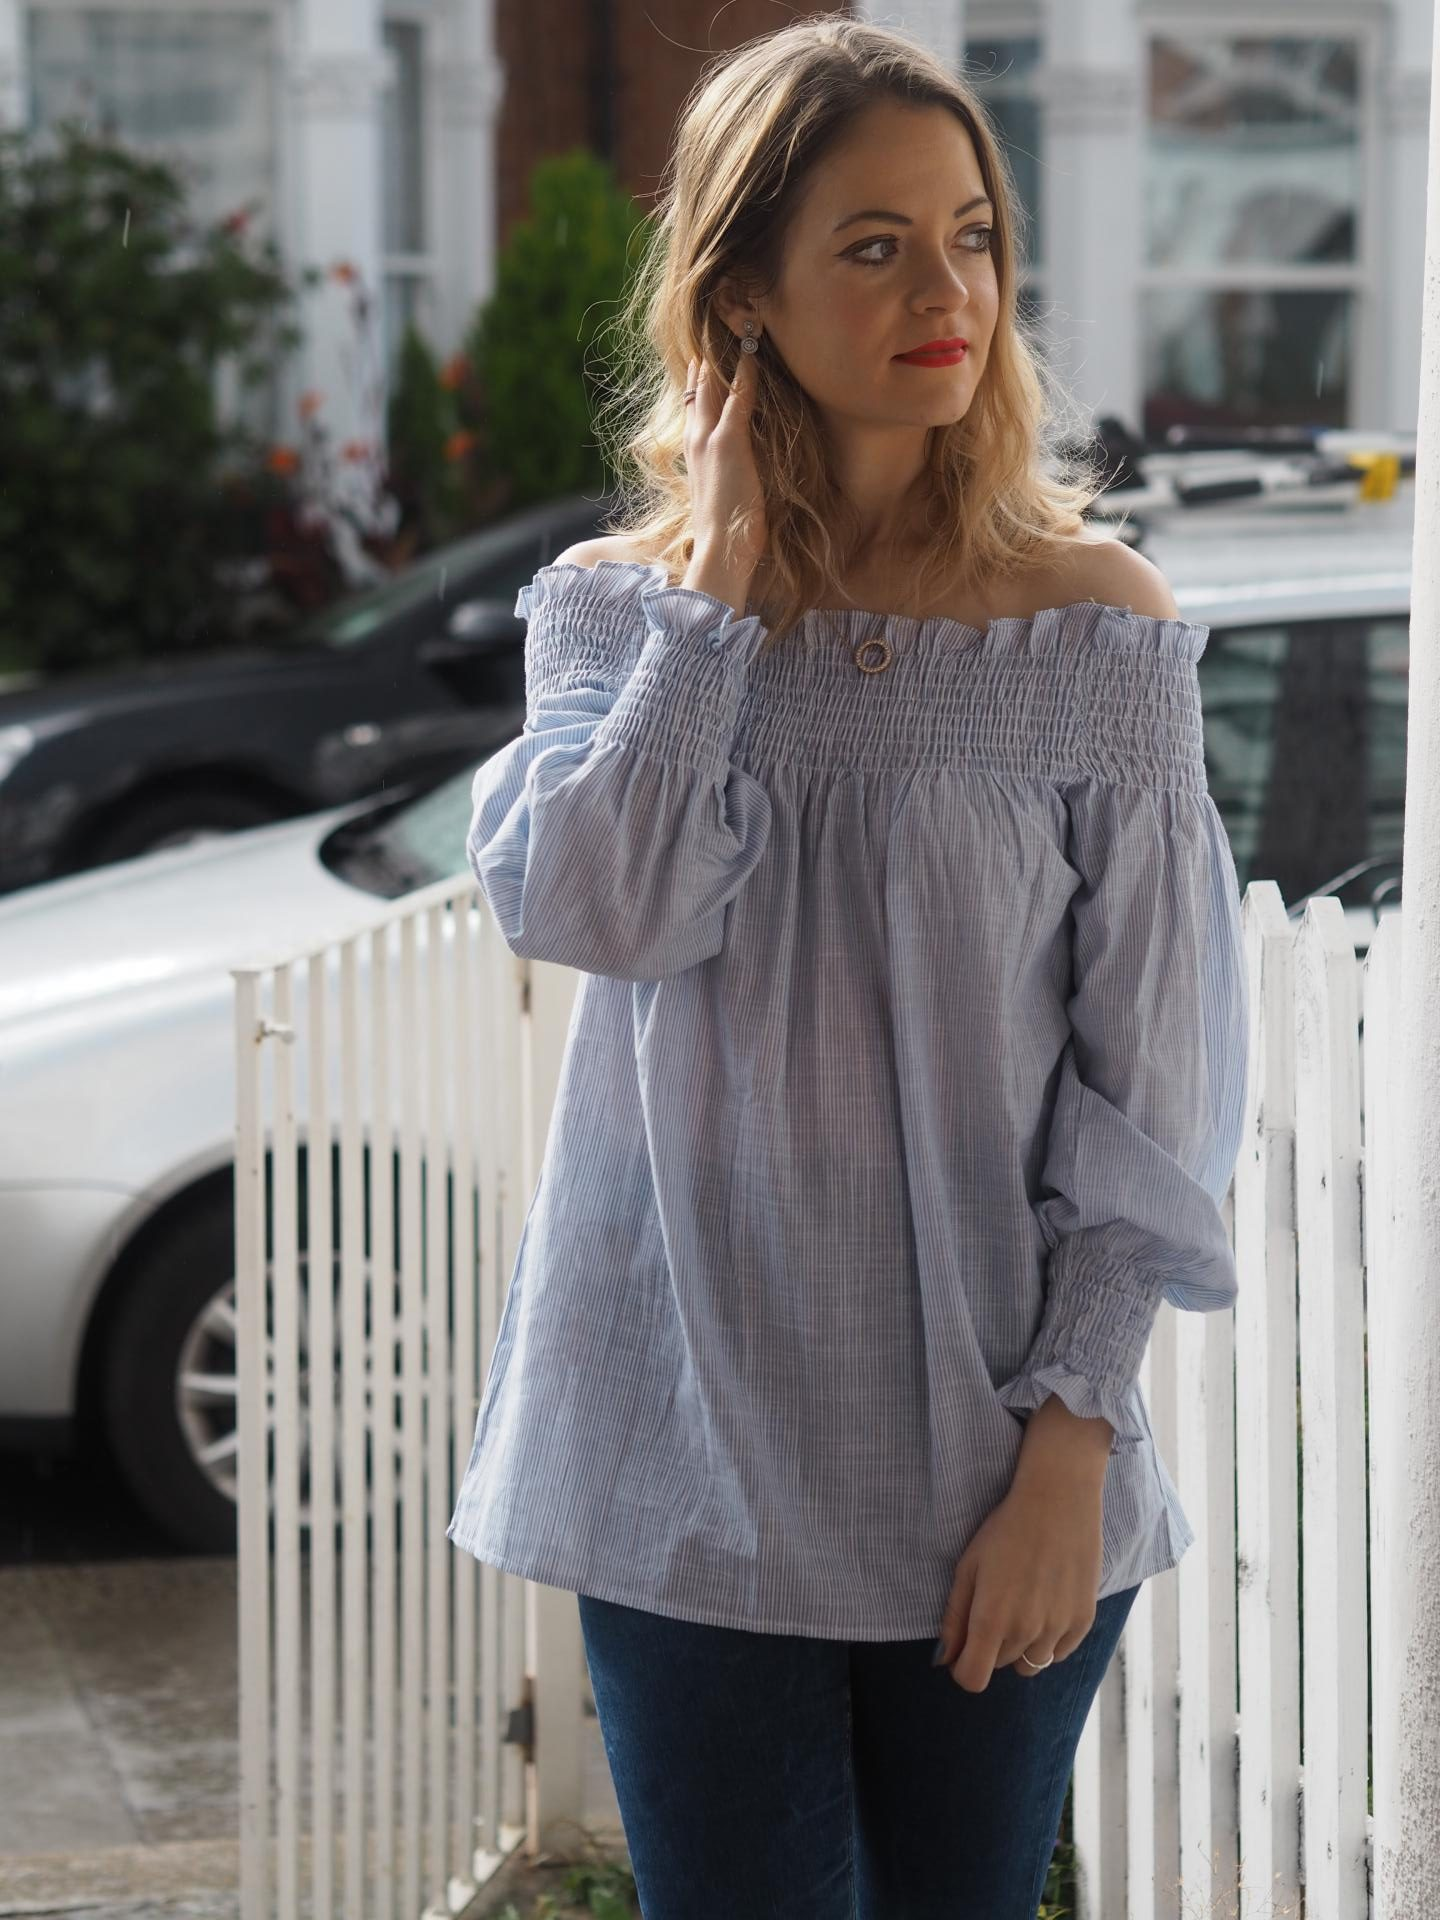 Off the shoulder Bardot top on Jamie Rockers from Beauty Rocks